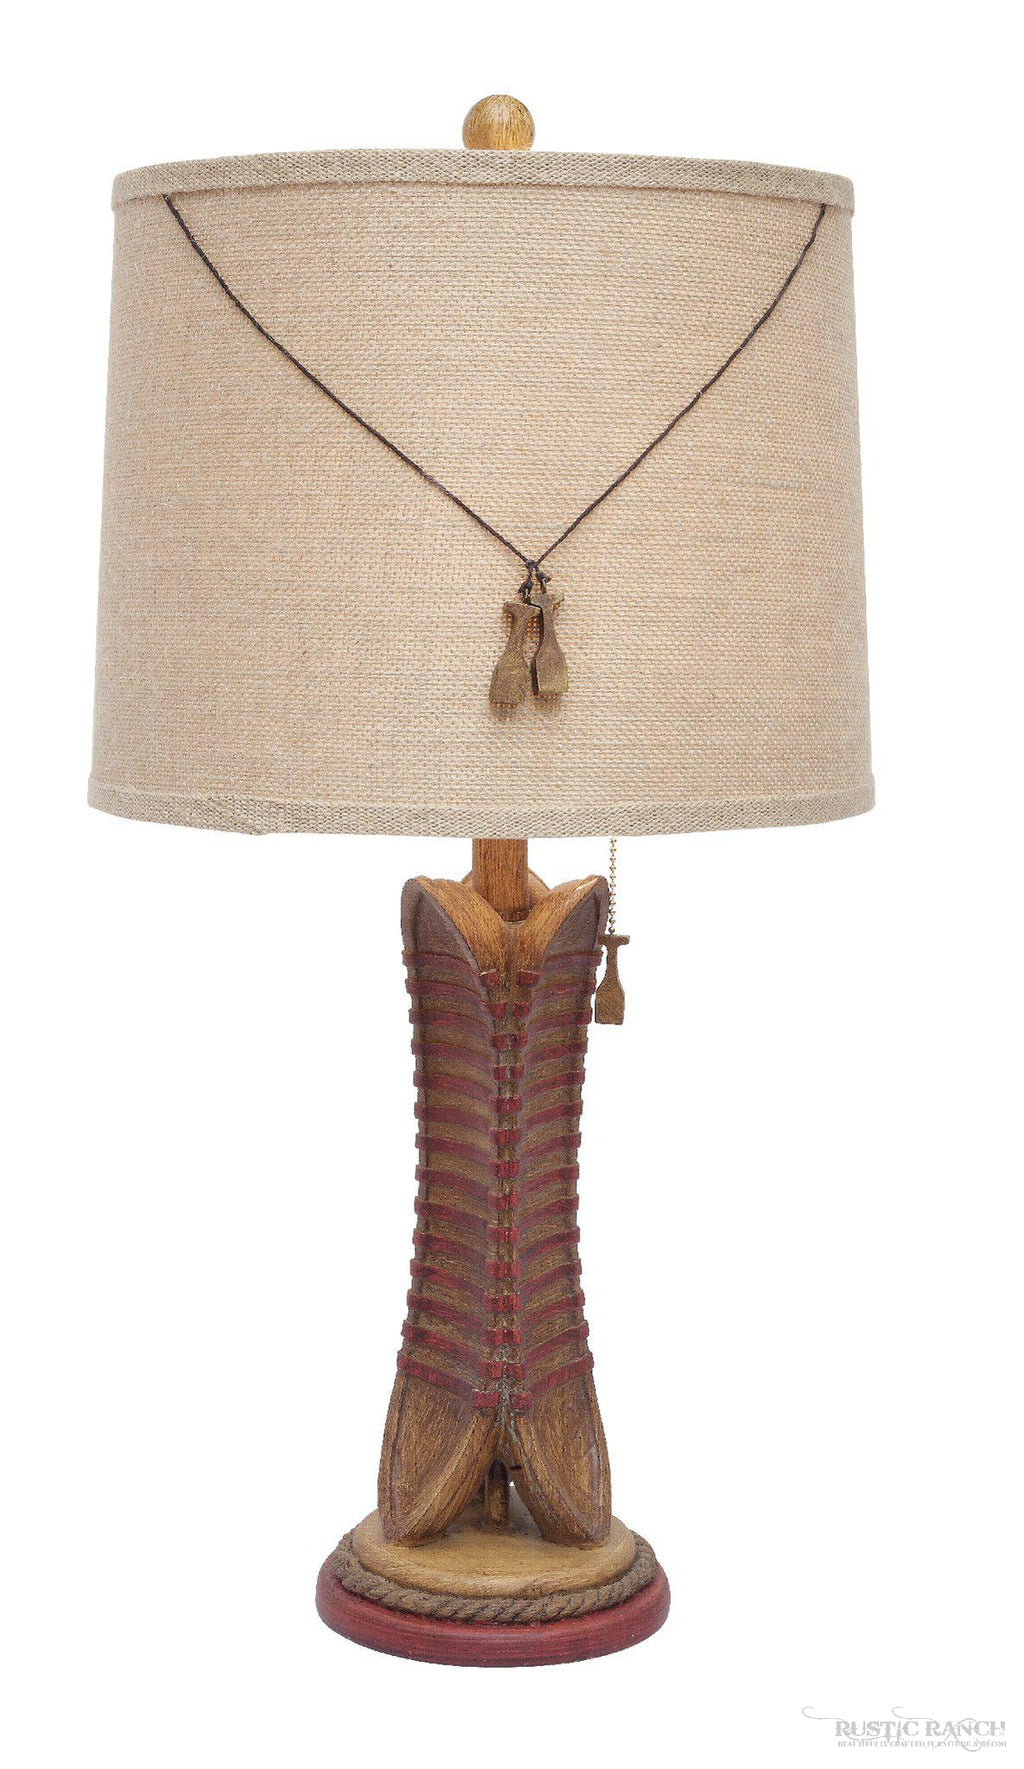 CANOE TABLE LAMP-Rustic Ranch